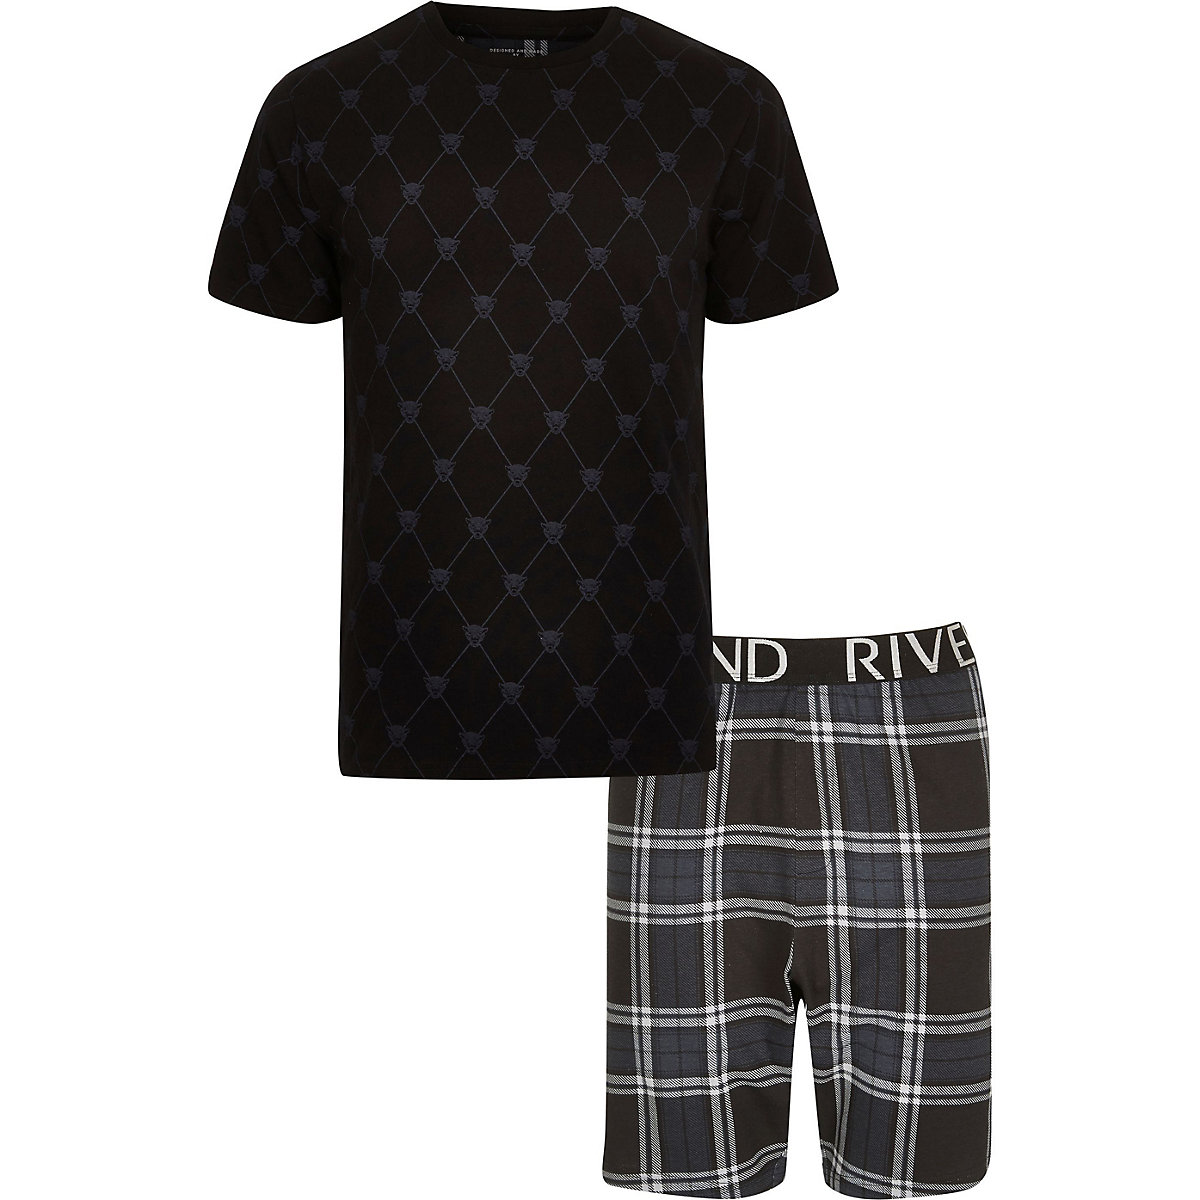 Big and Tall Black panther tartan pyjama set